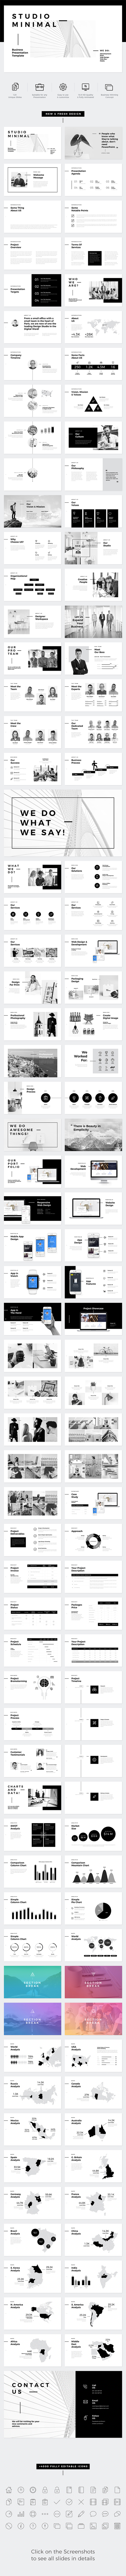 GraphicRiver Studio Minimal Presentation PowerPoint Template 20939116